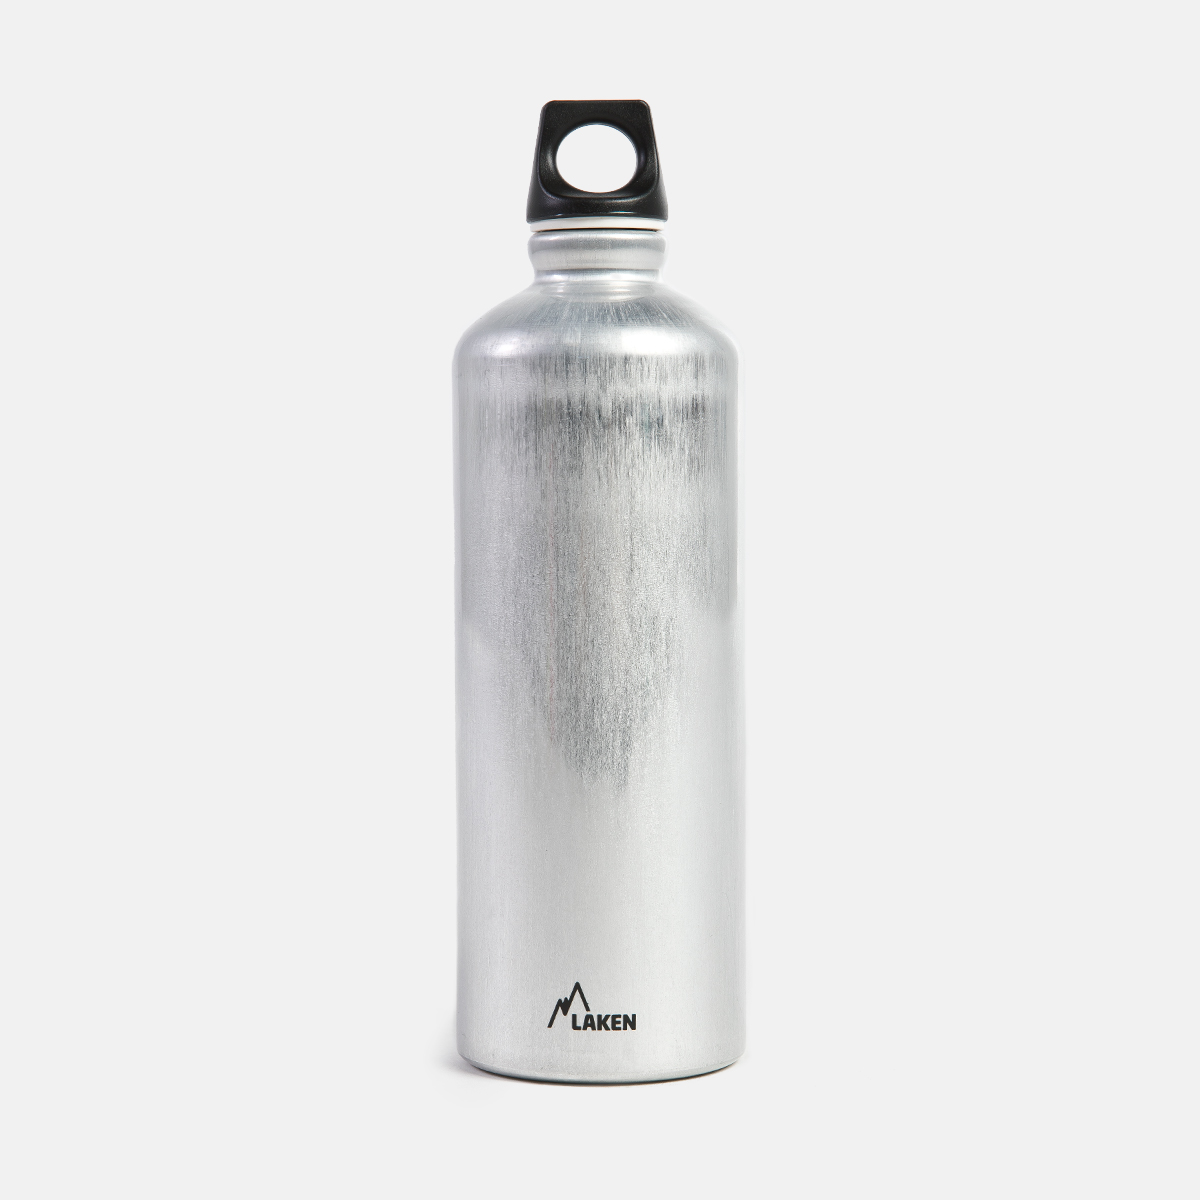 SILVER ALUMINUM BOTTLE WHITBY 0.75L